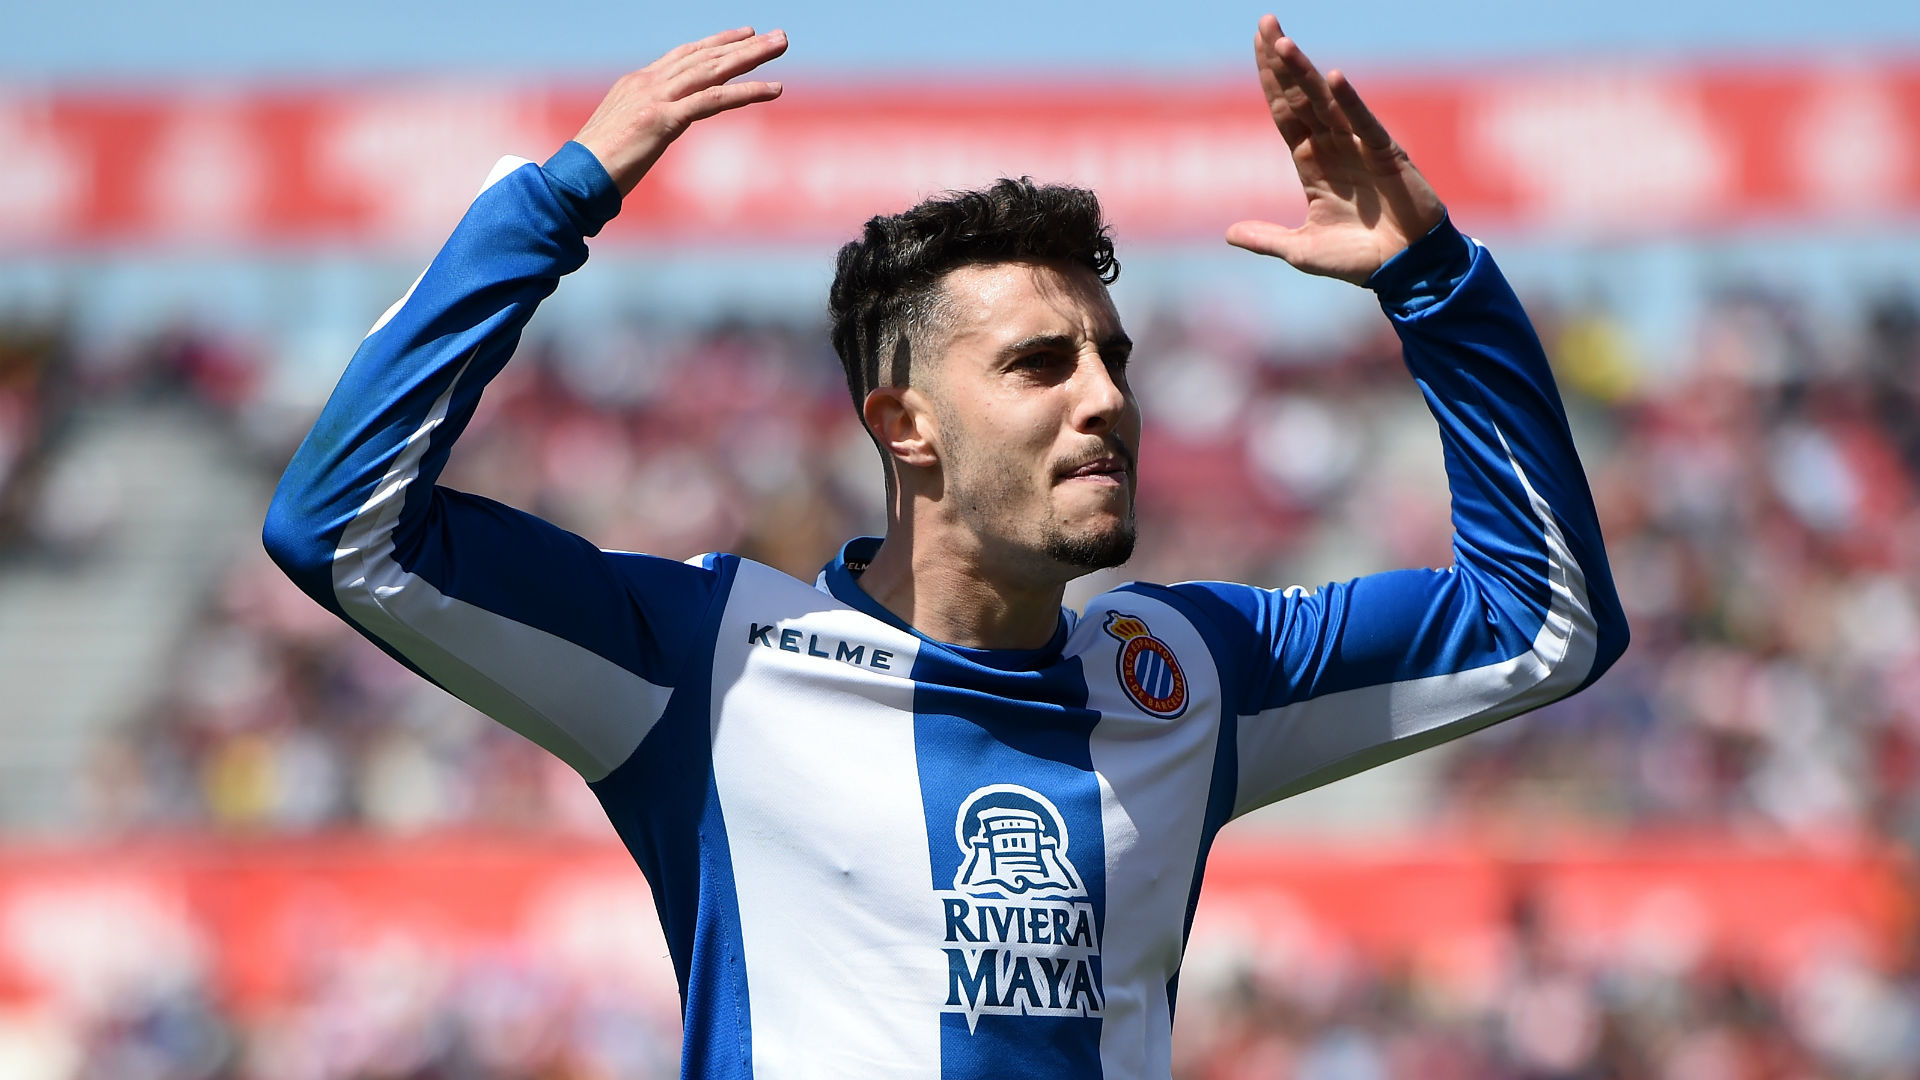 Atletico Madrid complete signing of Espanyol defender Hermoso